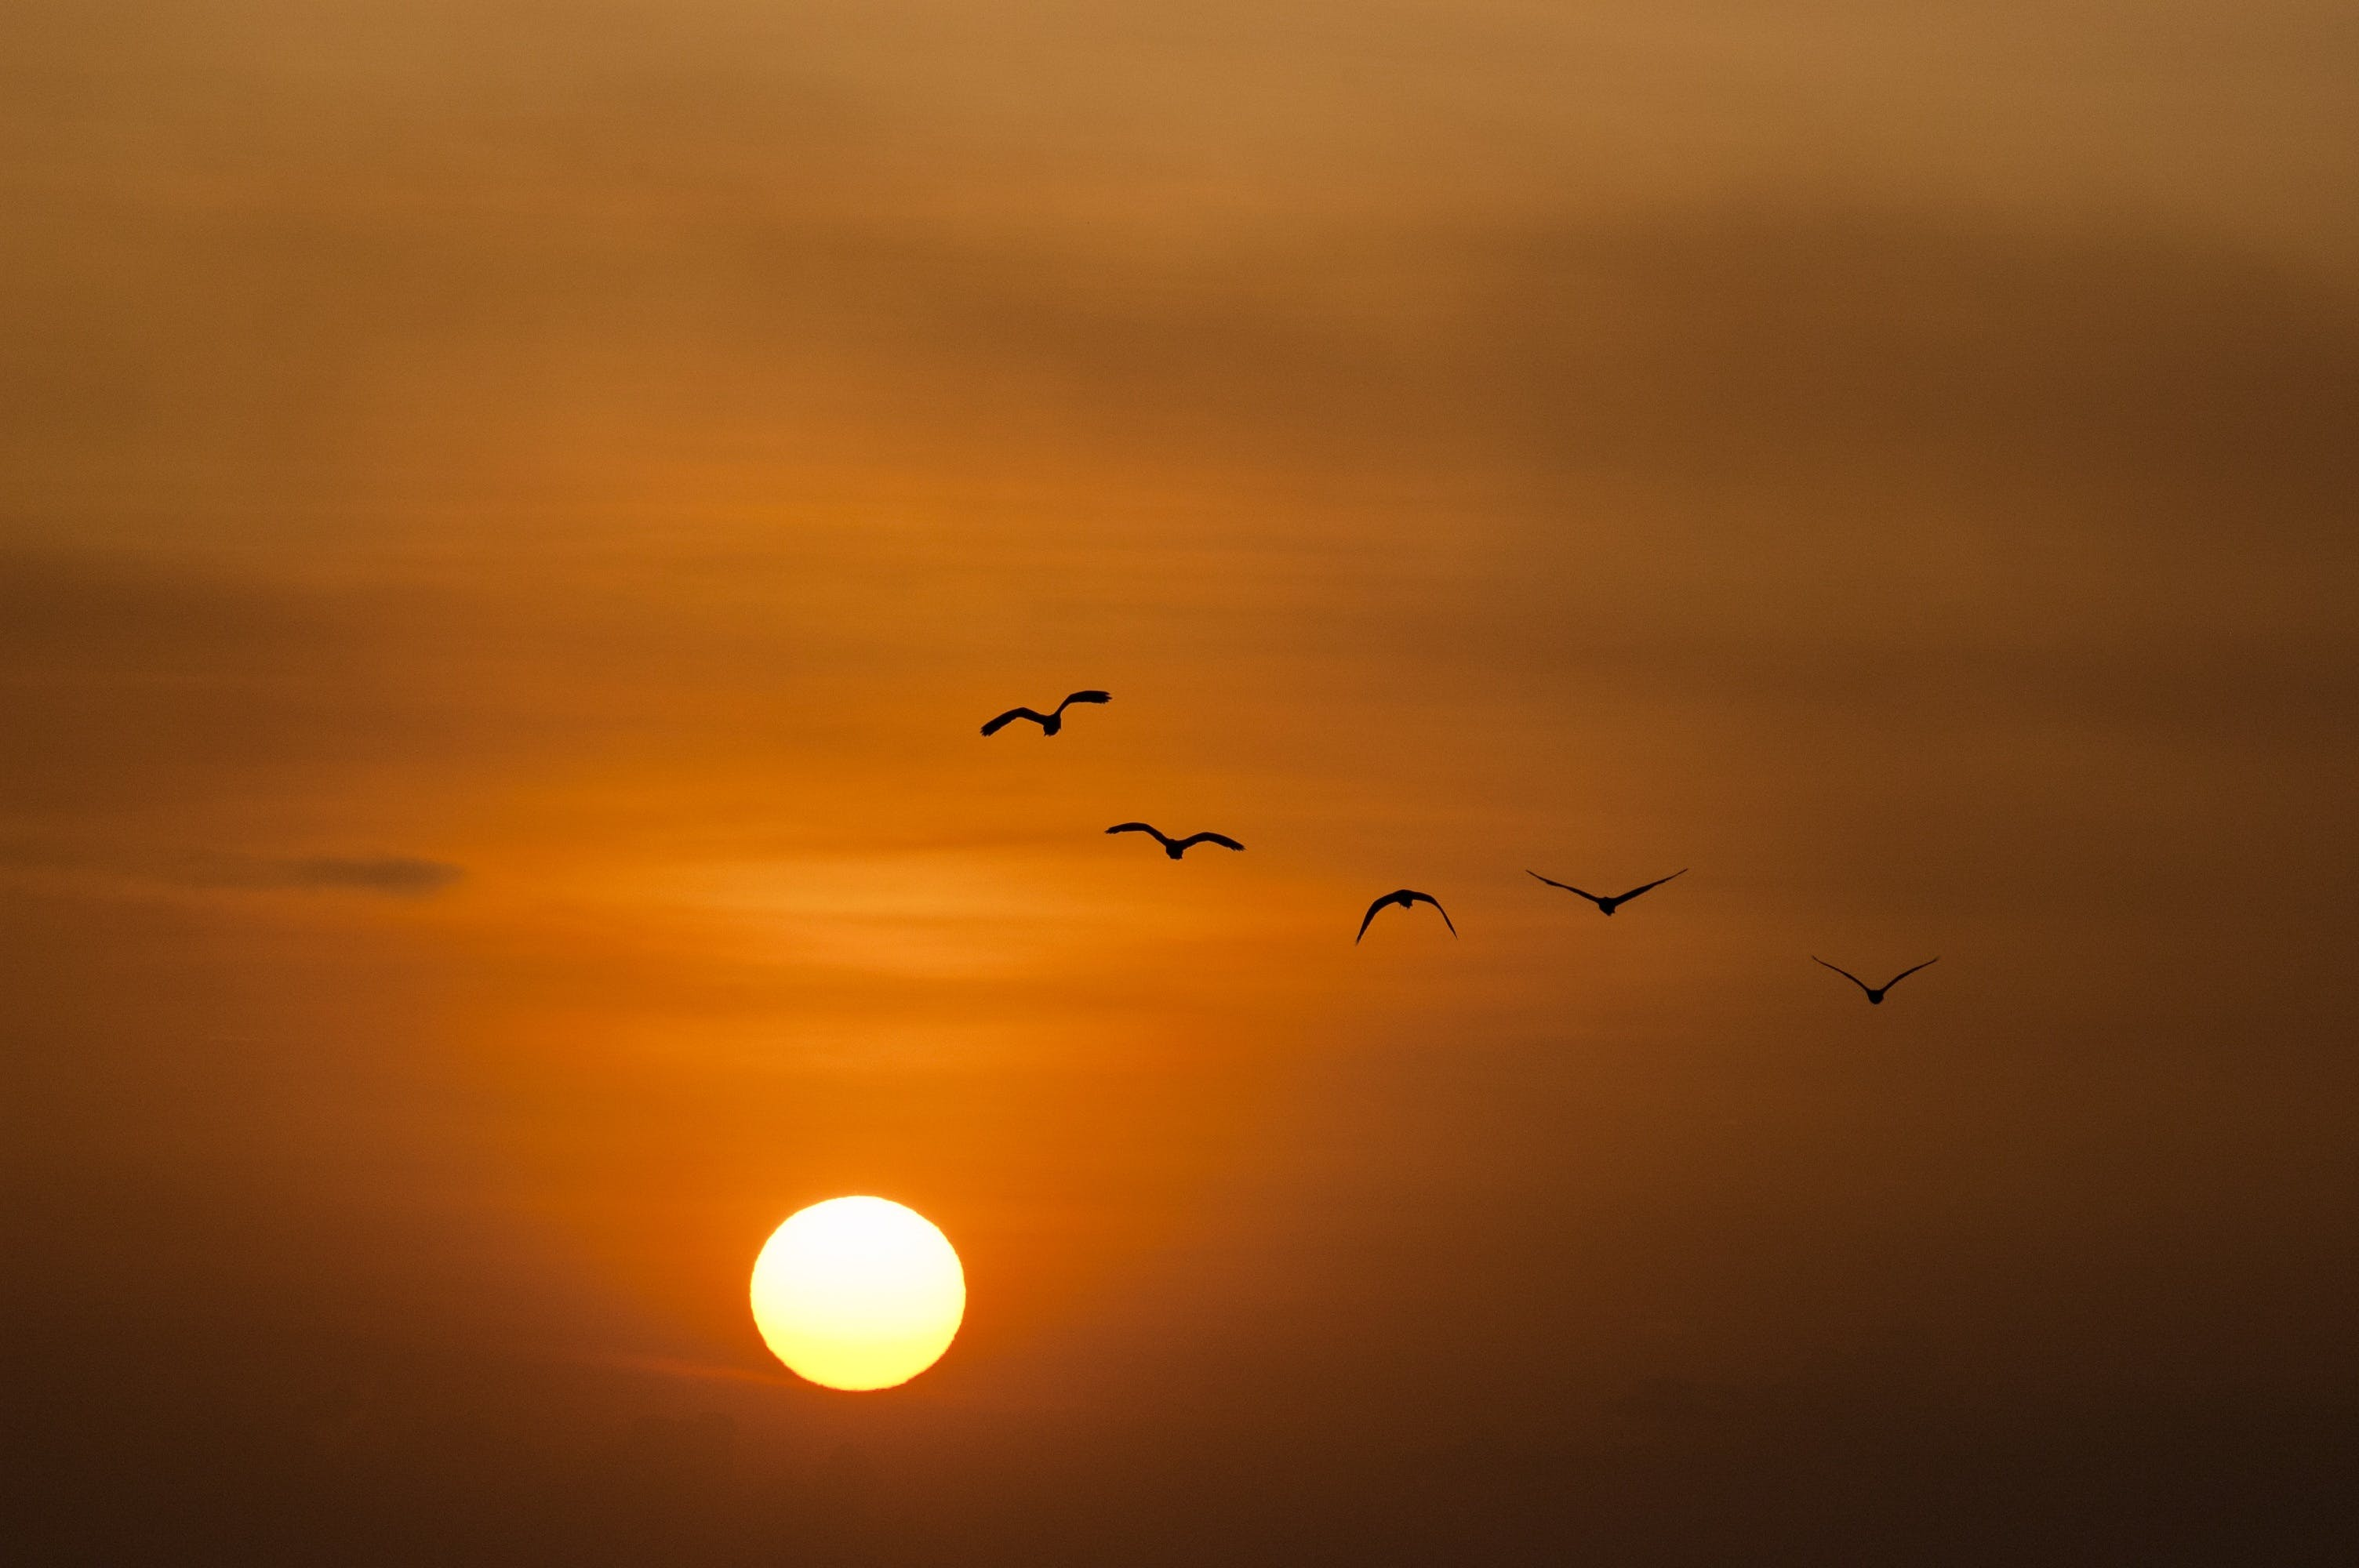 Birds Silhouette during Sunset